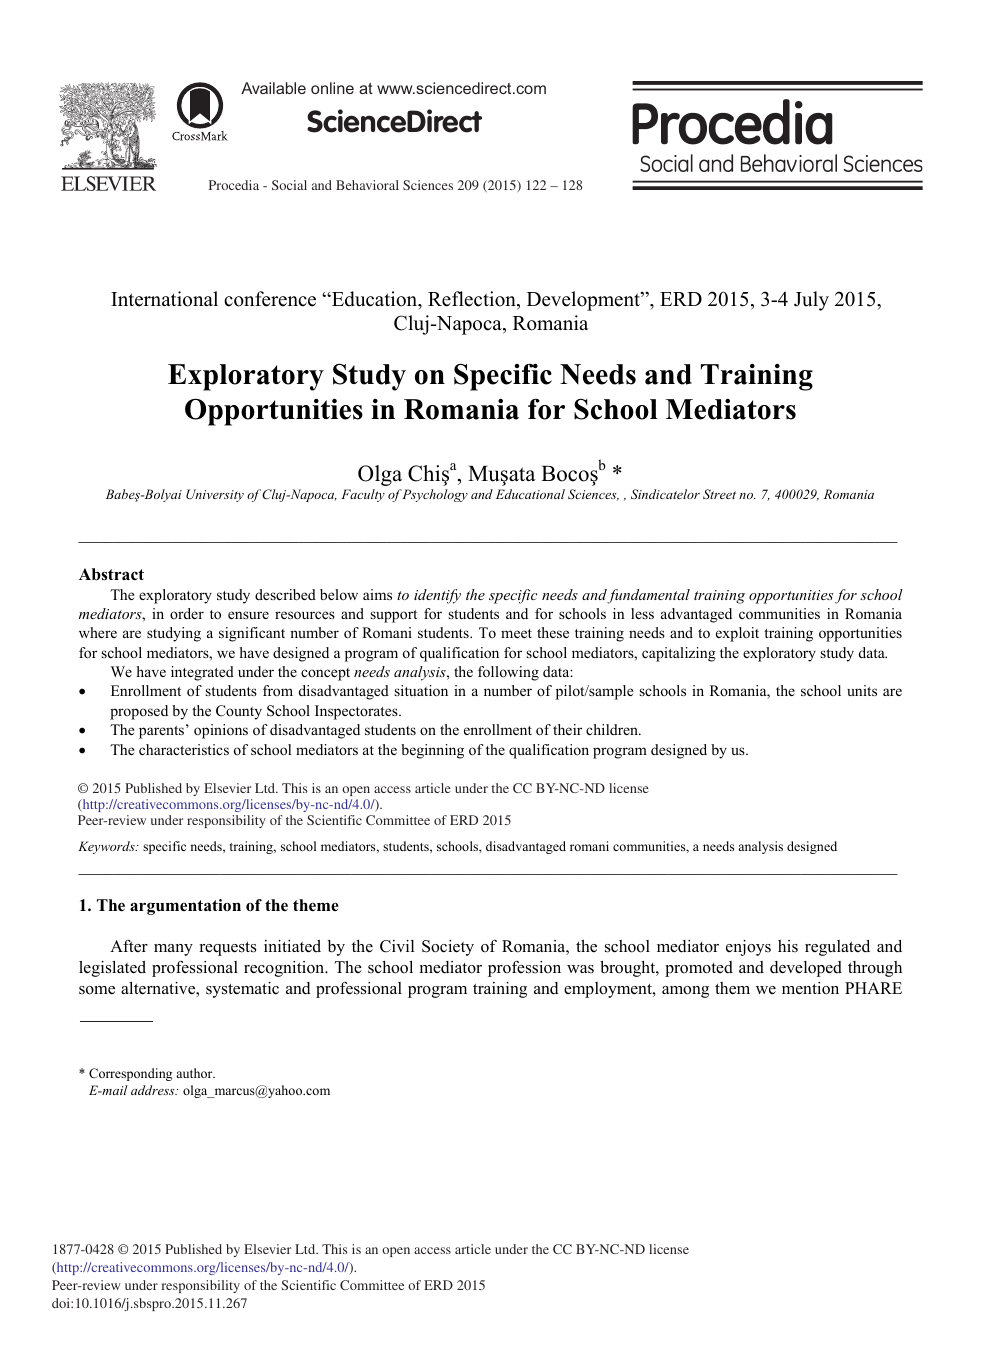 Exploratory Study On Specific Needs And Training